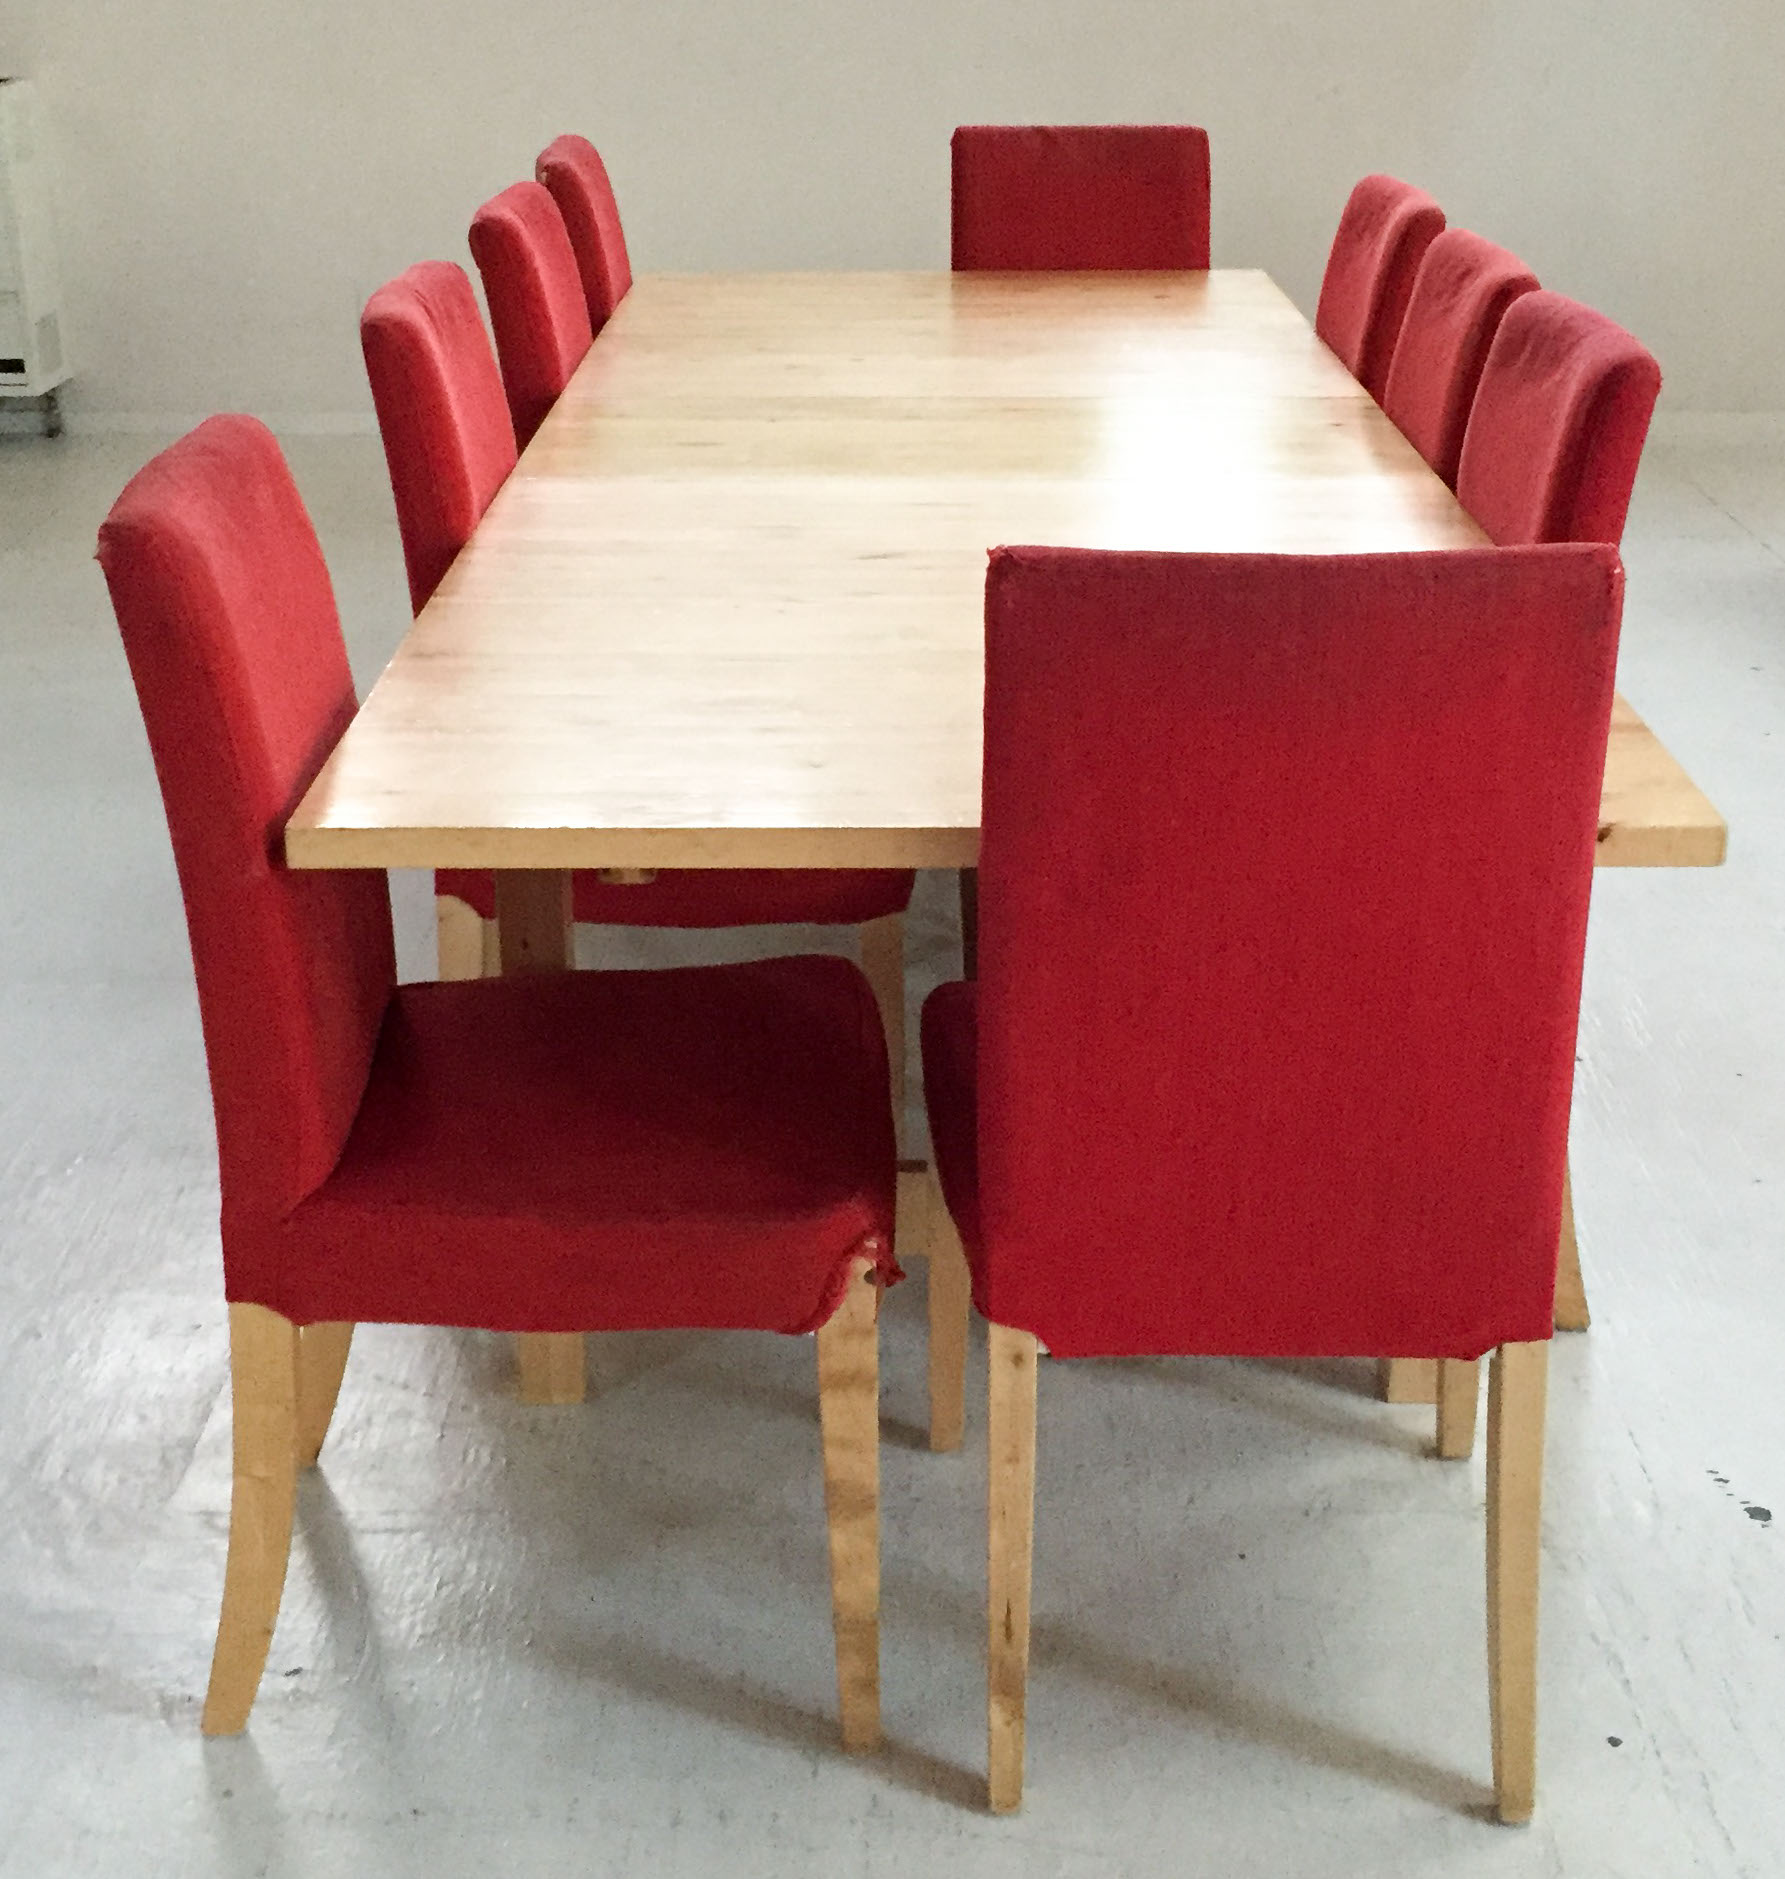 Stupendous Chair Repair 06 Nik Kinnaird Gmtry Best Dining Table And Chair Ideas Images Gmtryco